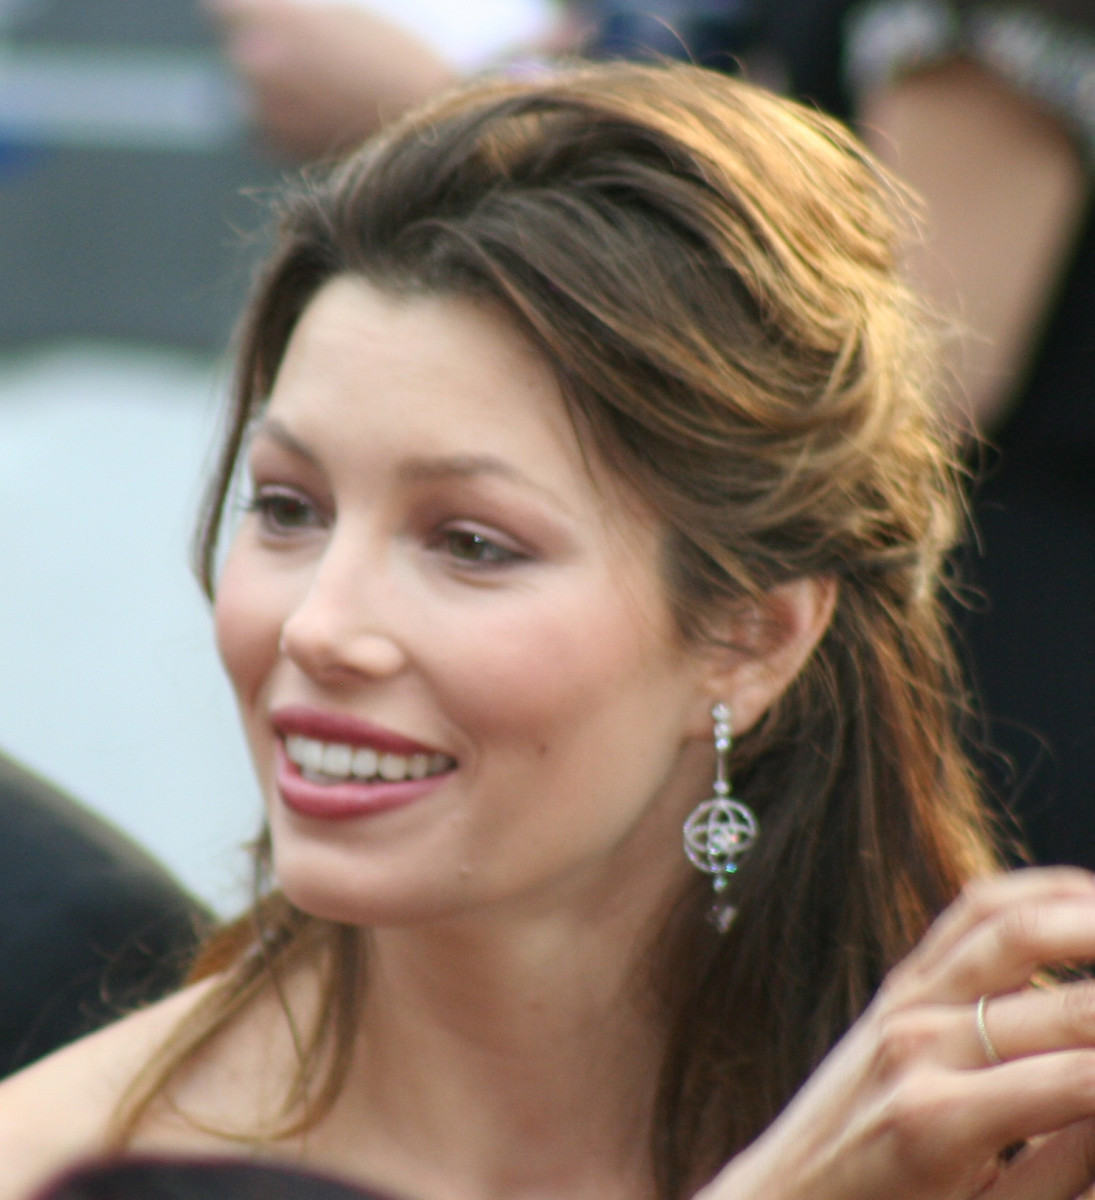 Jessica Biel is executive producer of the show The Sinner and star of its first season.